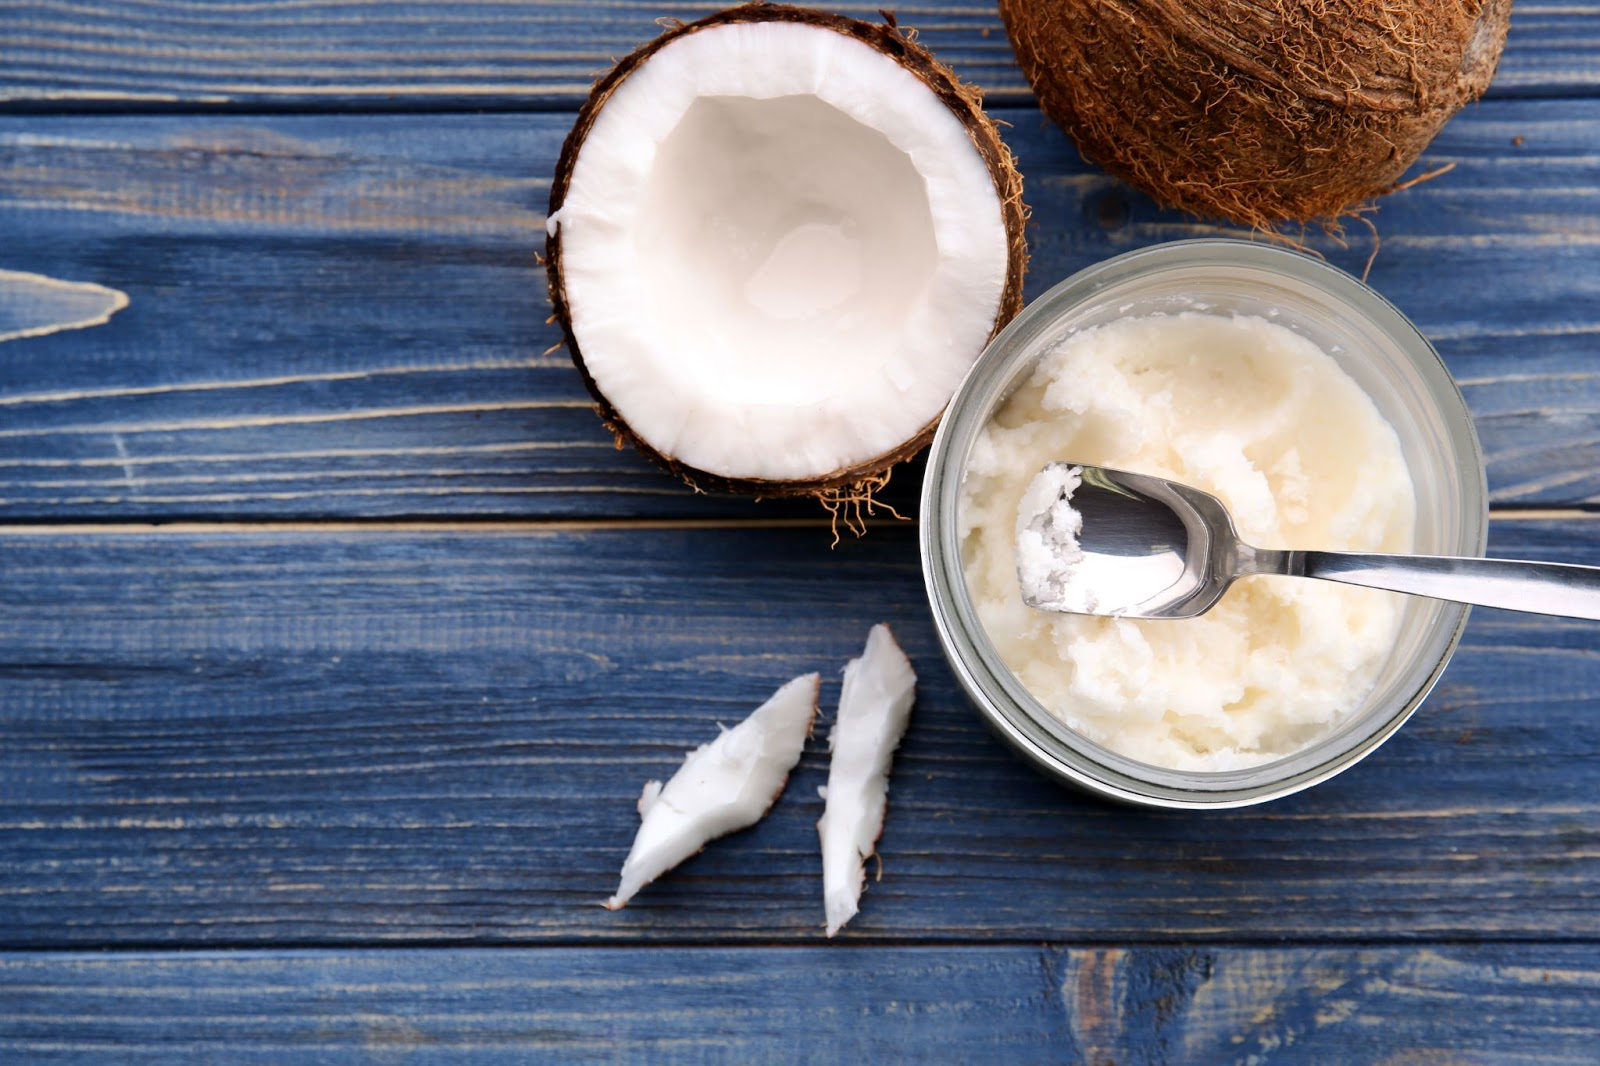 What Are the Benefits of Coconut Oil for Nutrition?